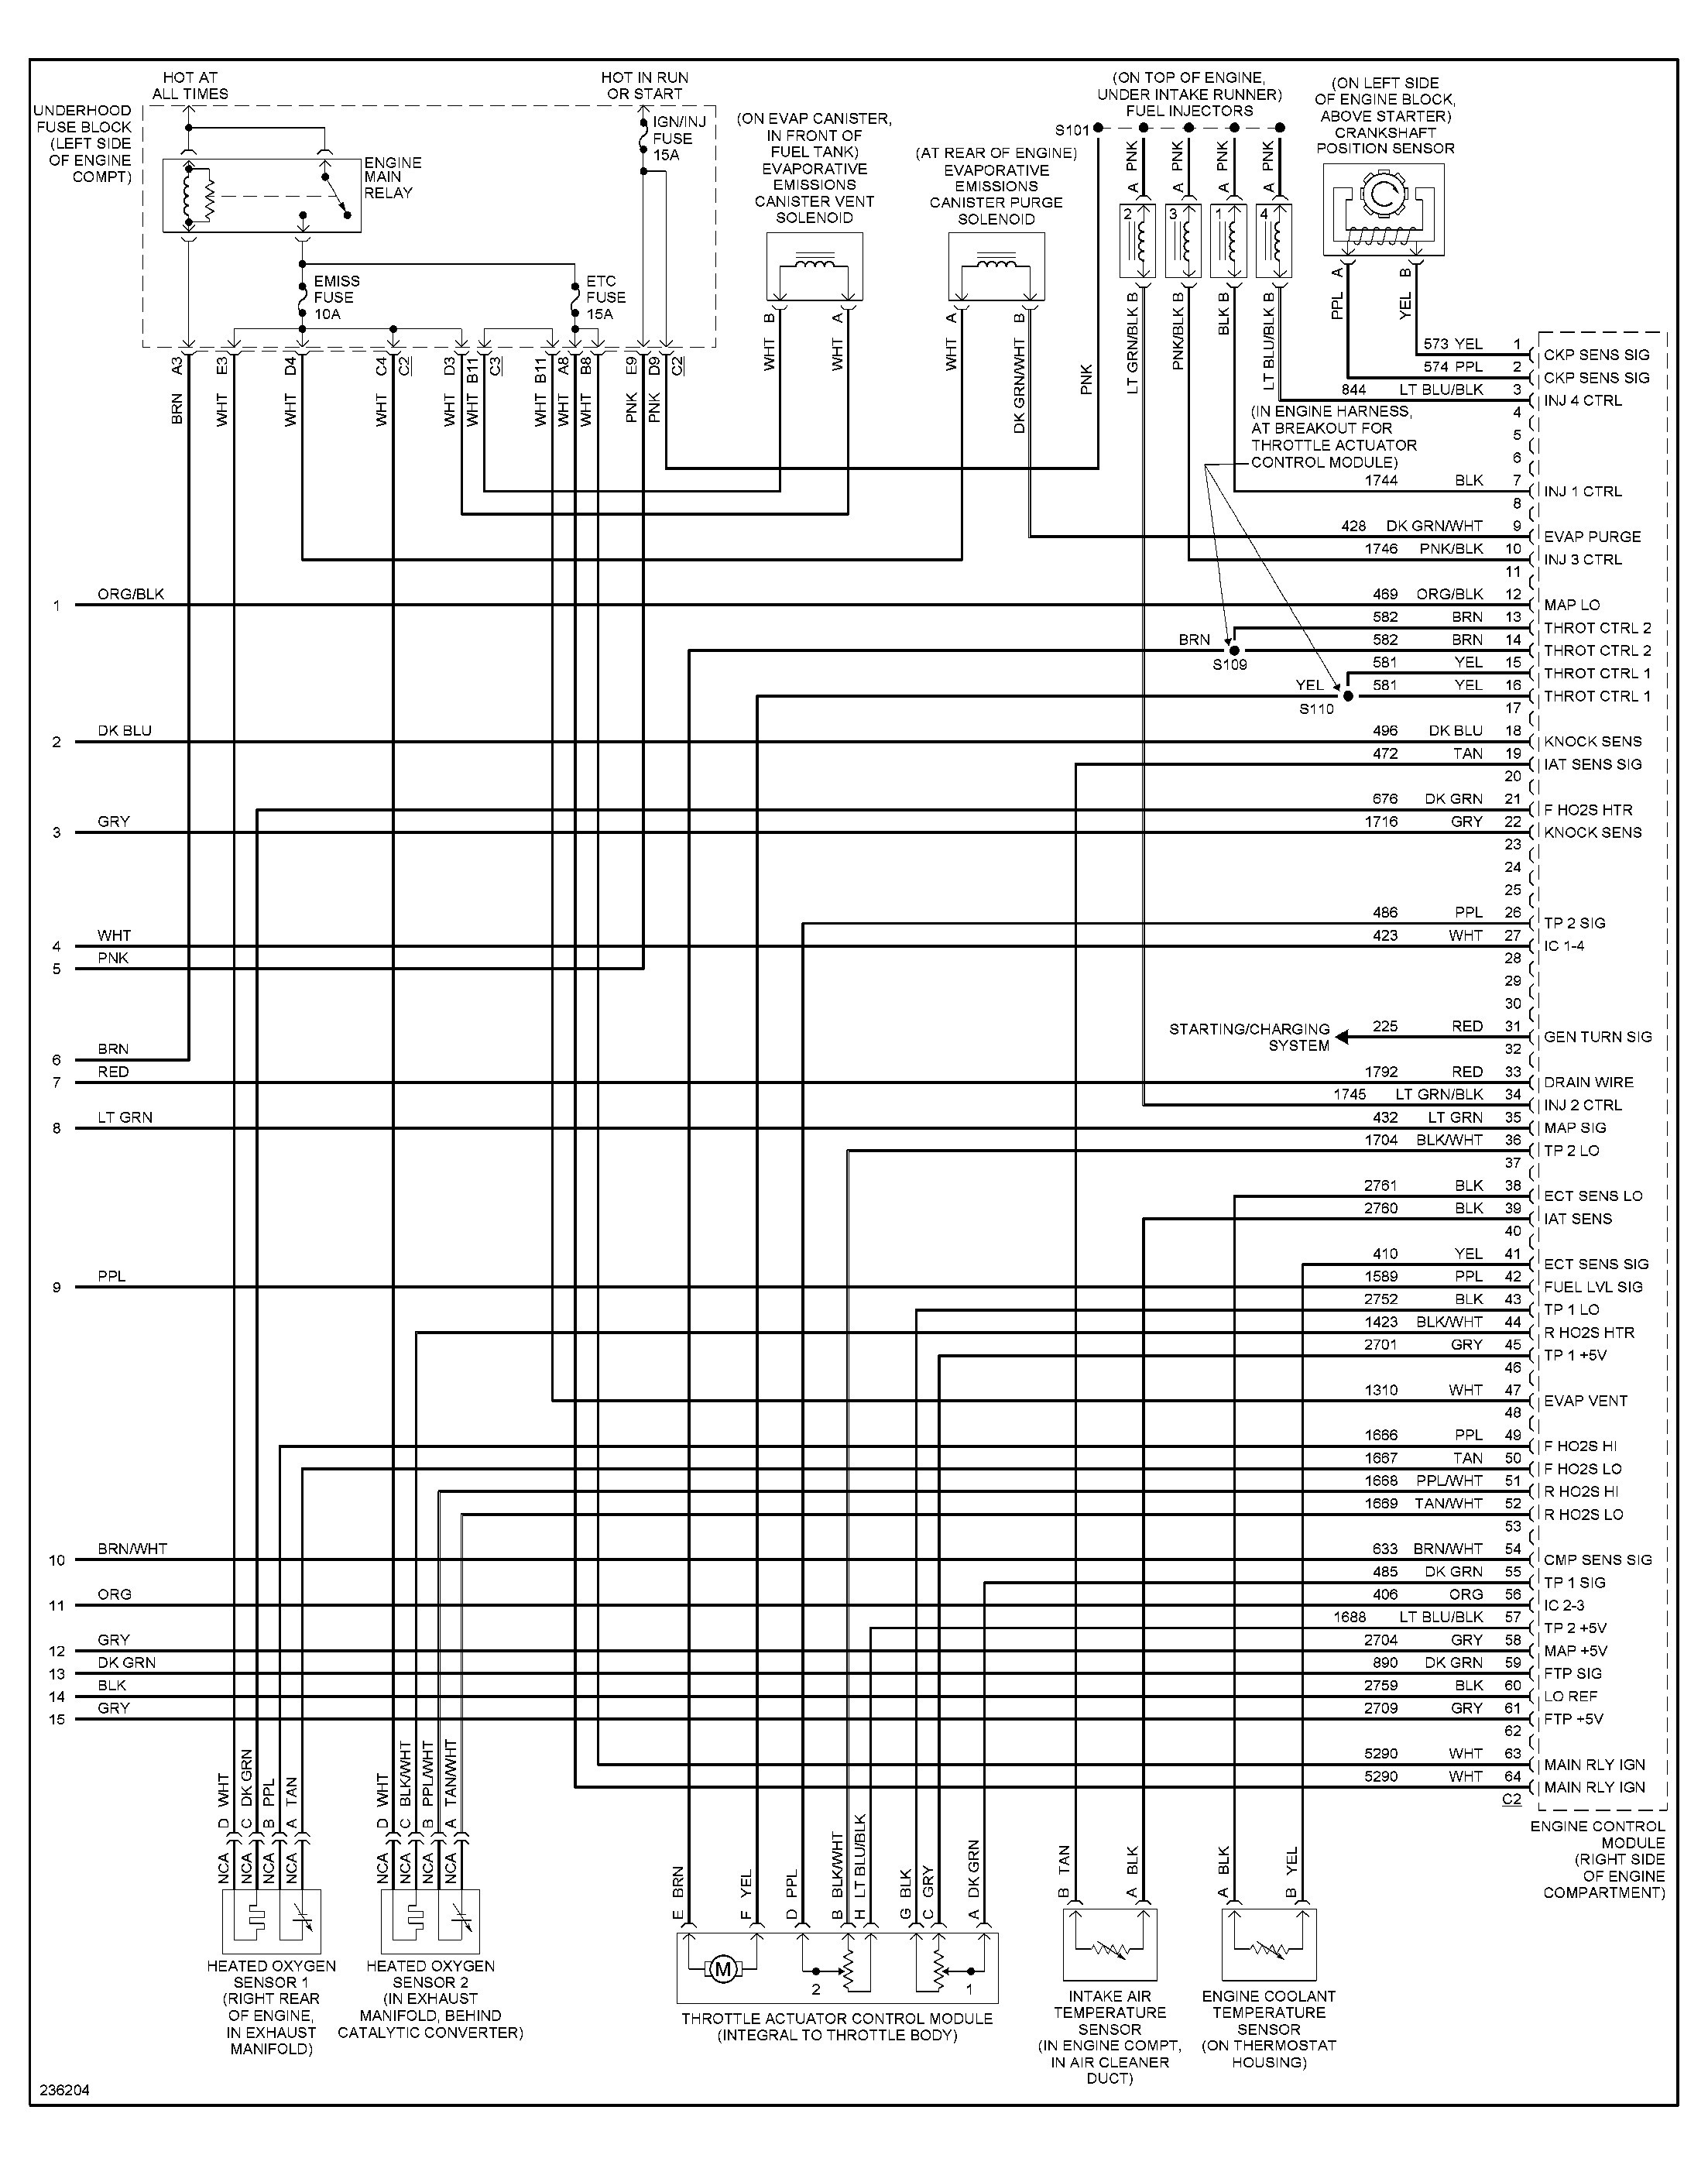 Appealing Scion Tc O2 Sensor Wiring Diagram Contemporary